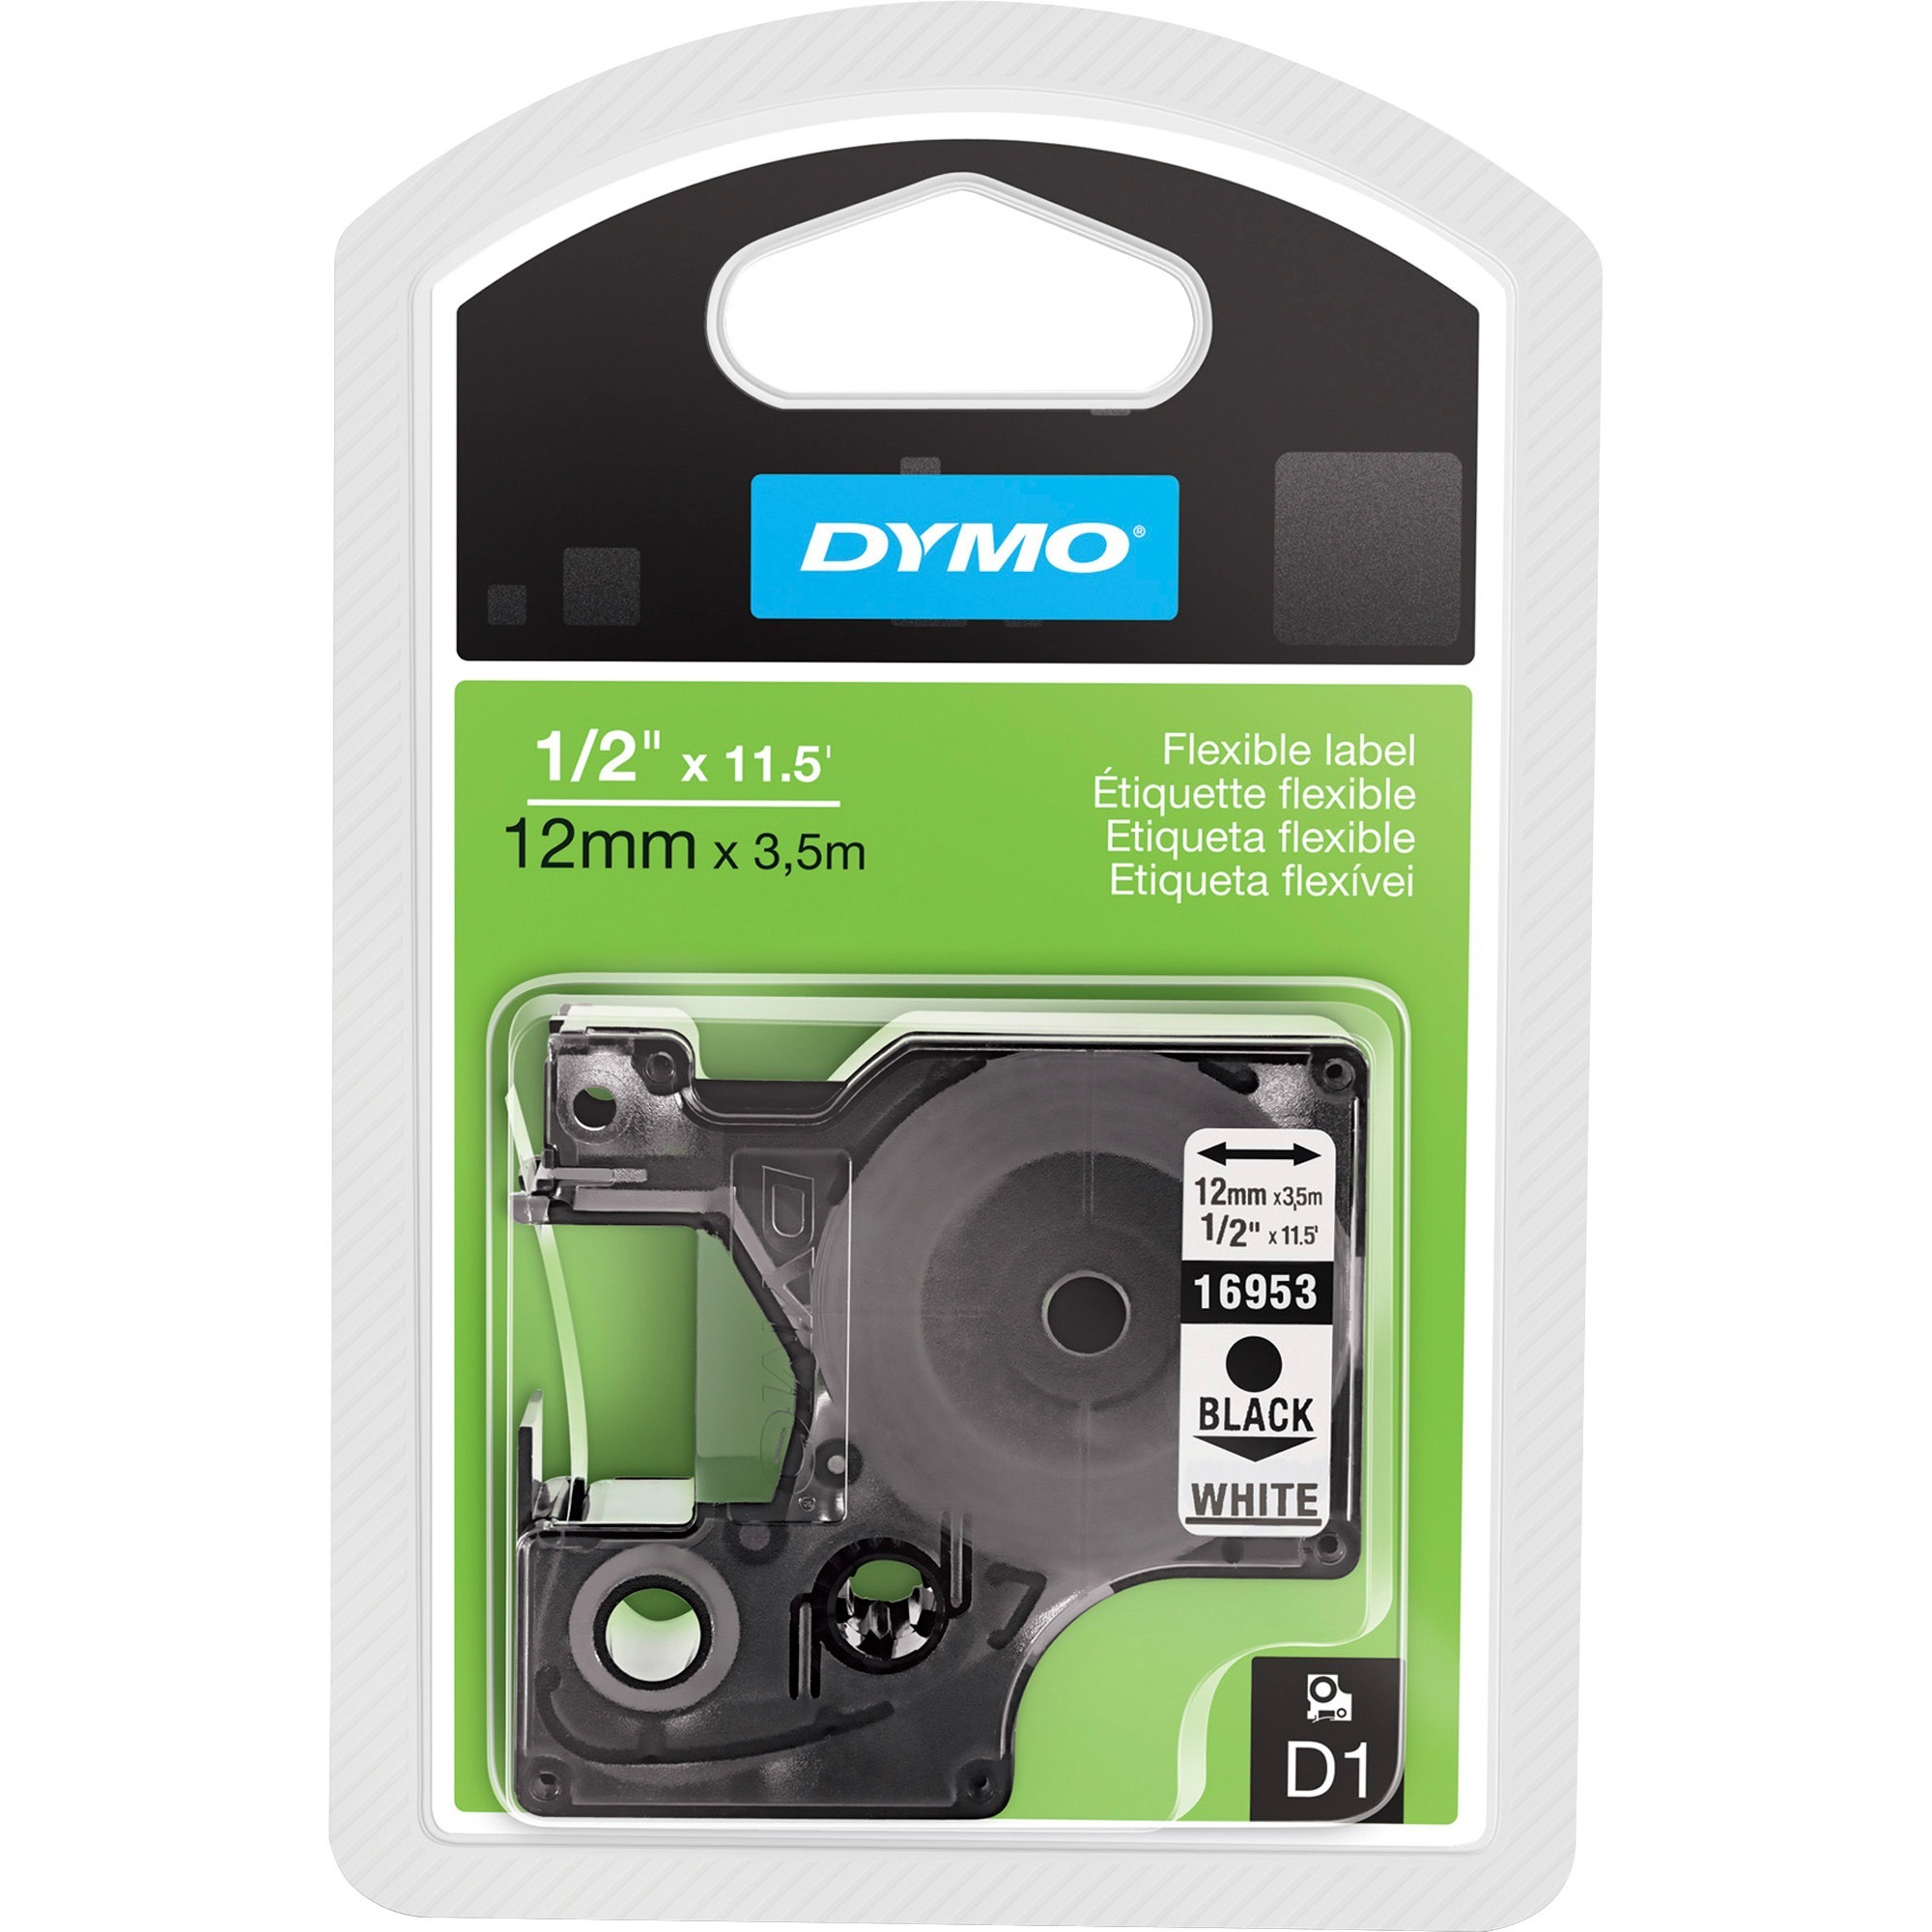 D1 Flexible Nylon Label Maker Tape, 1/2in x 12ft, Black on White